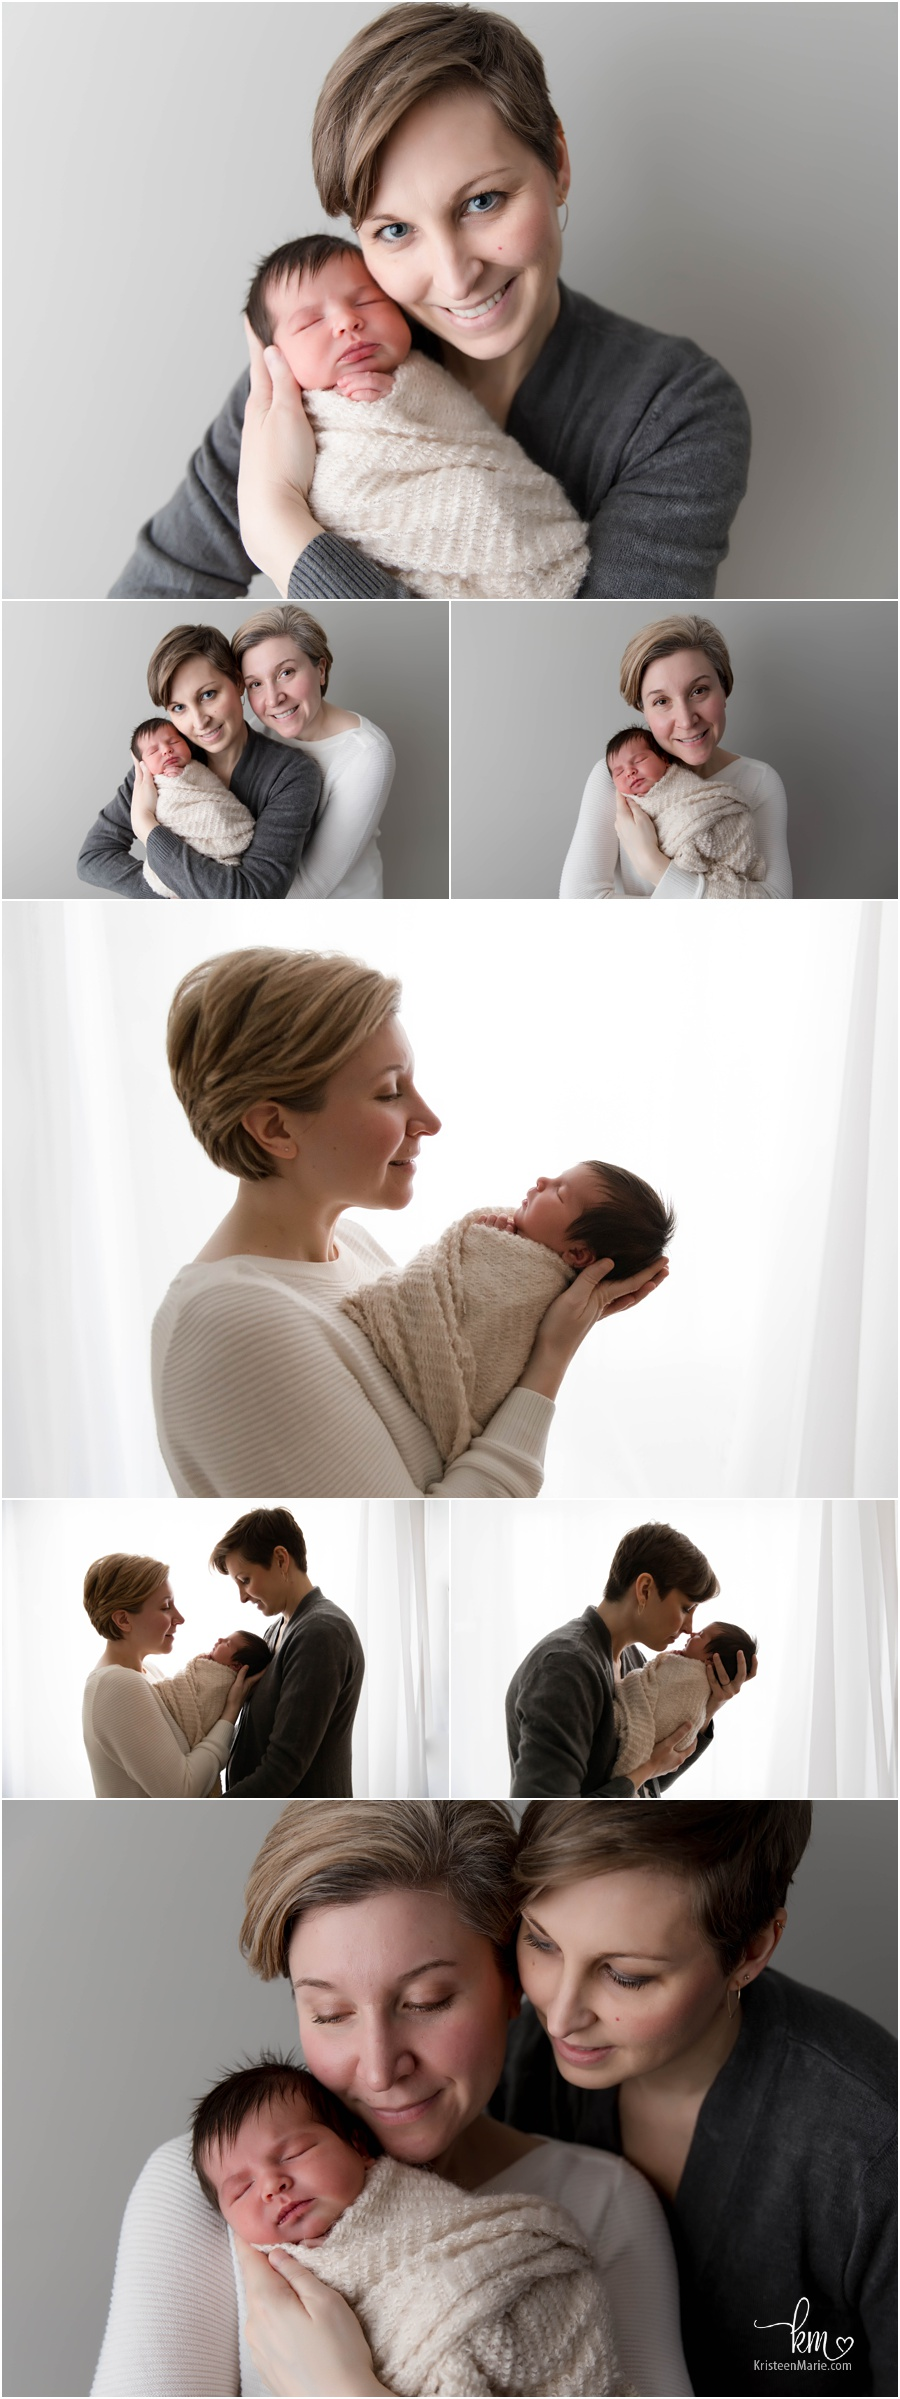 Two moms and newborn baby girl - Same sex couple with newborn